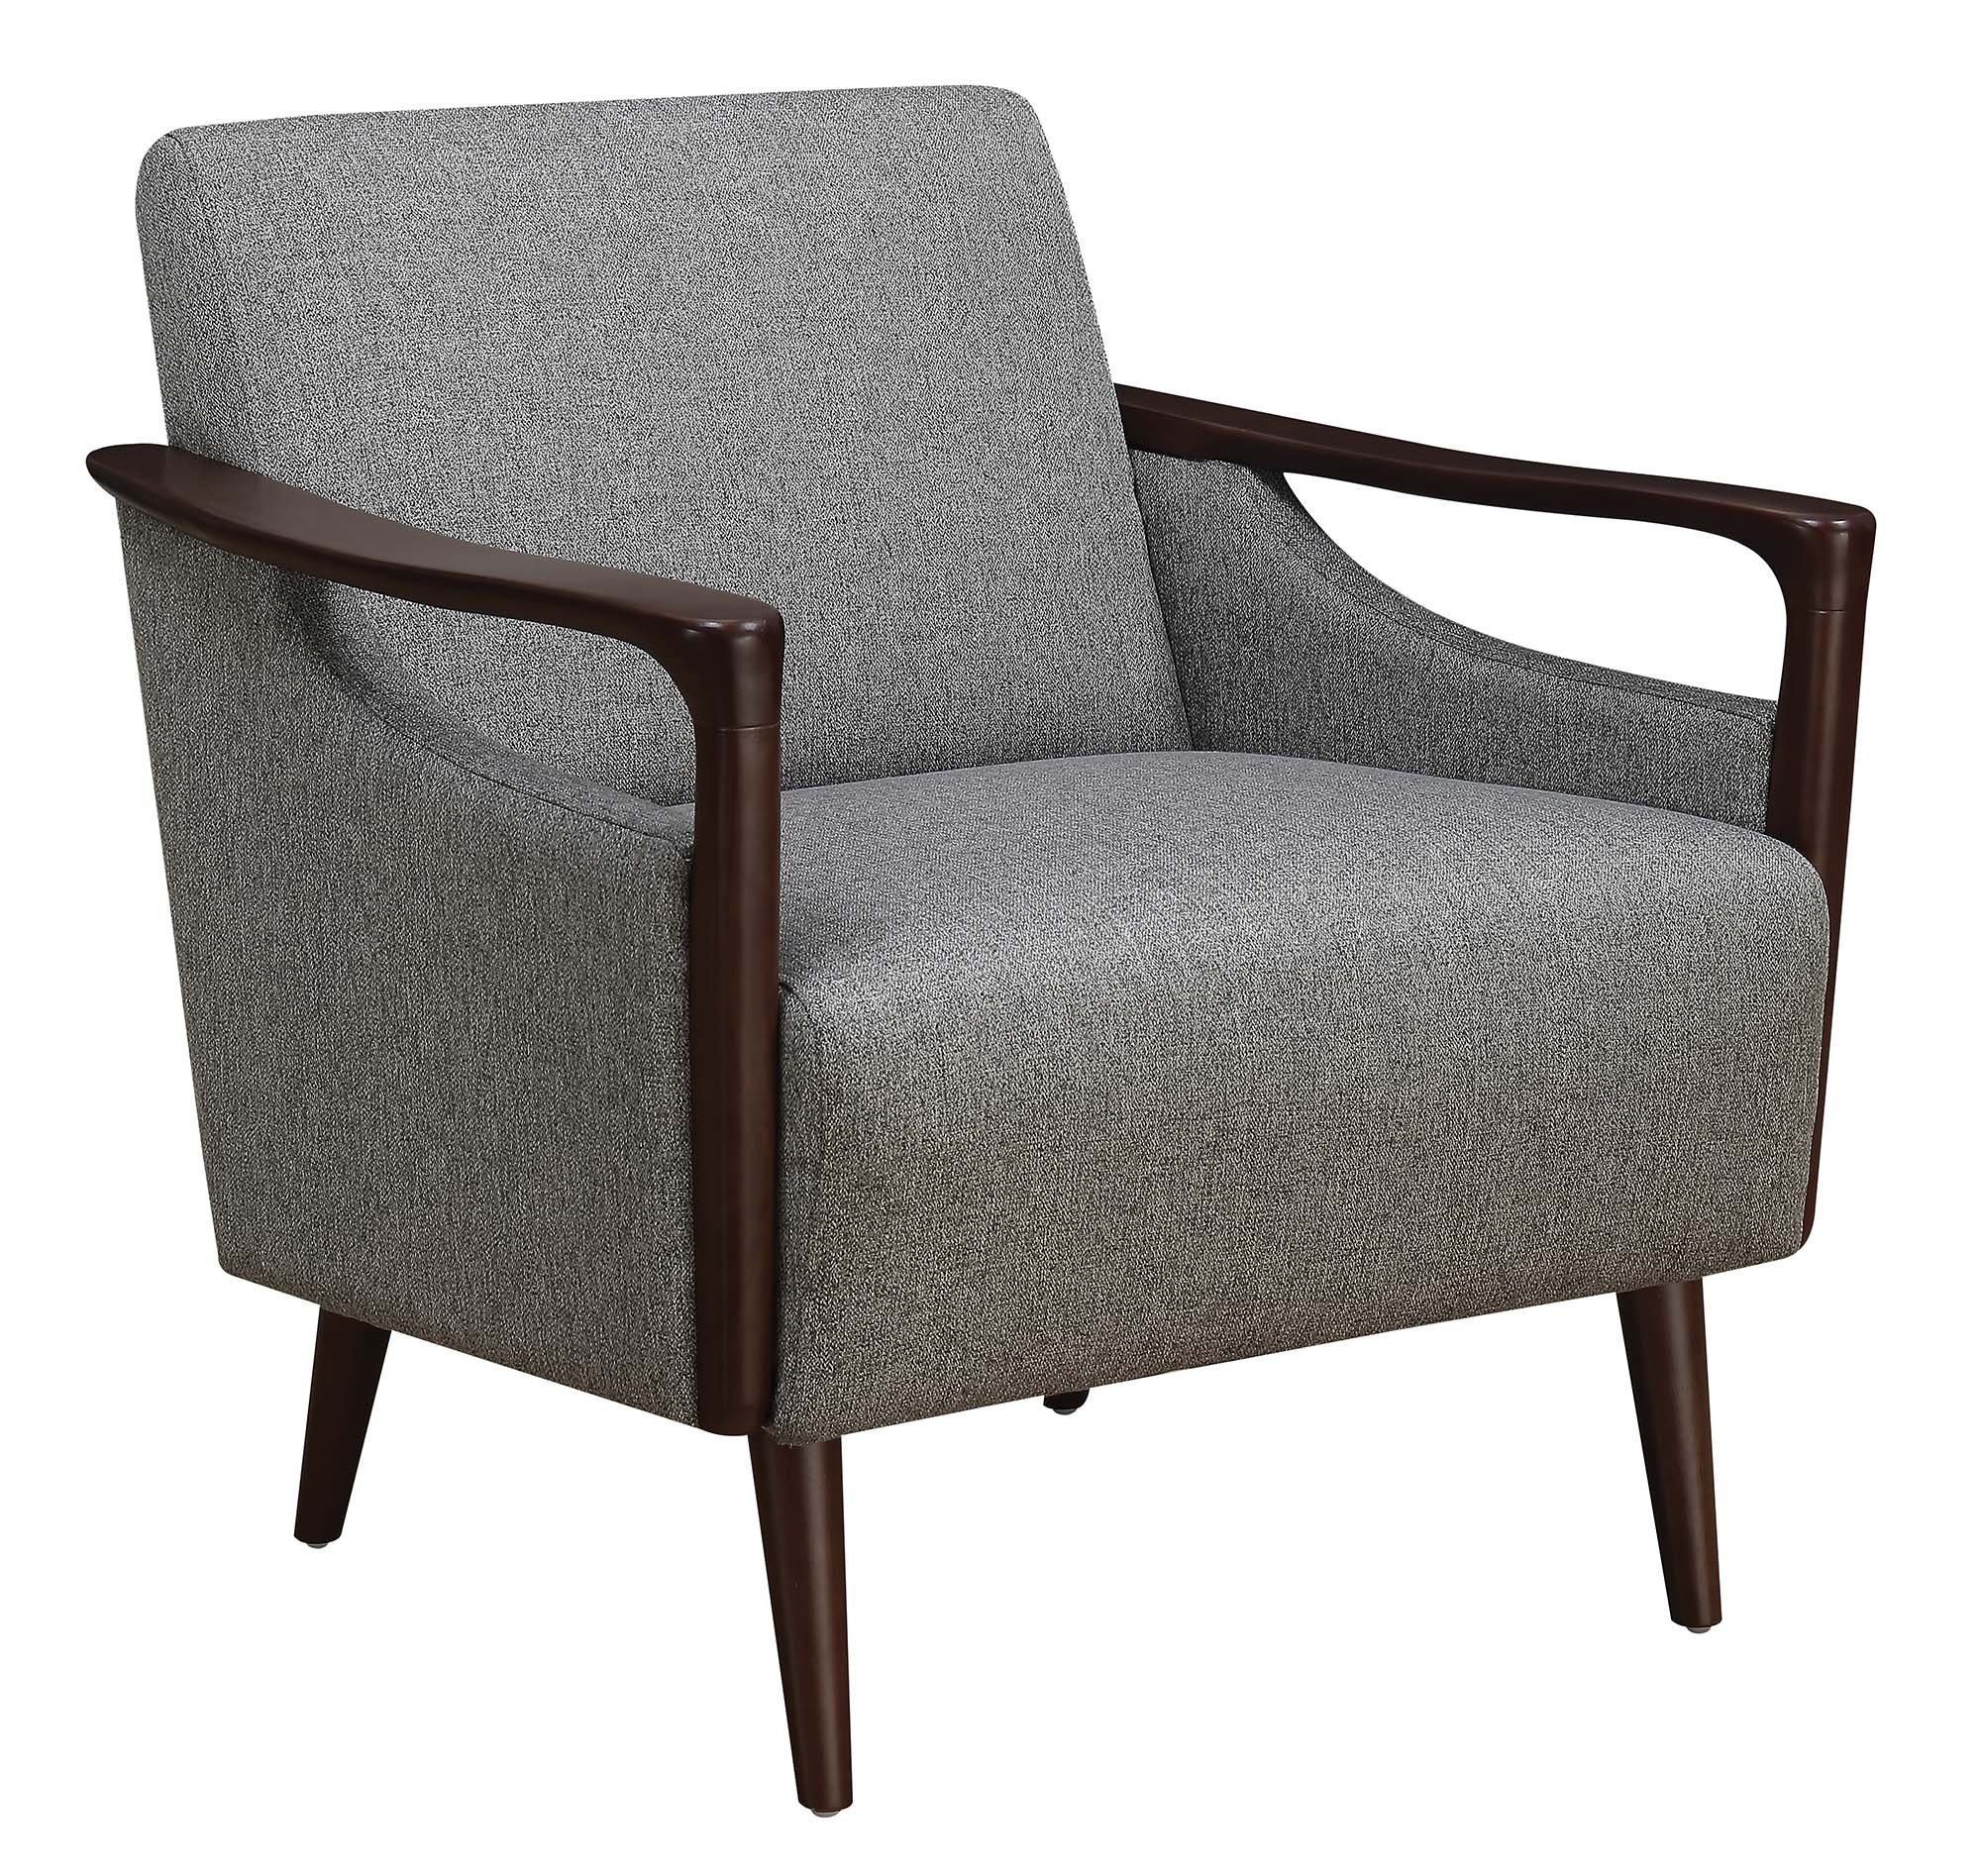 Coaster Home Furnishings Upholstered Accent Chair Grey and Brown - Set includes: One (1) accent chair Materials: Fabric, pine and plywood Material Content: 100% polyester - living-room-furniture, living-room, accent-chairs - 91FQPStYFgL -